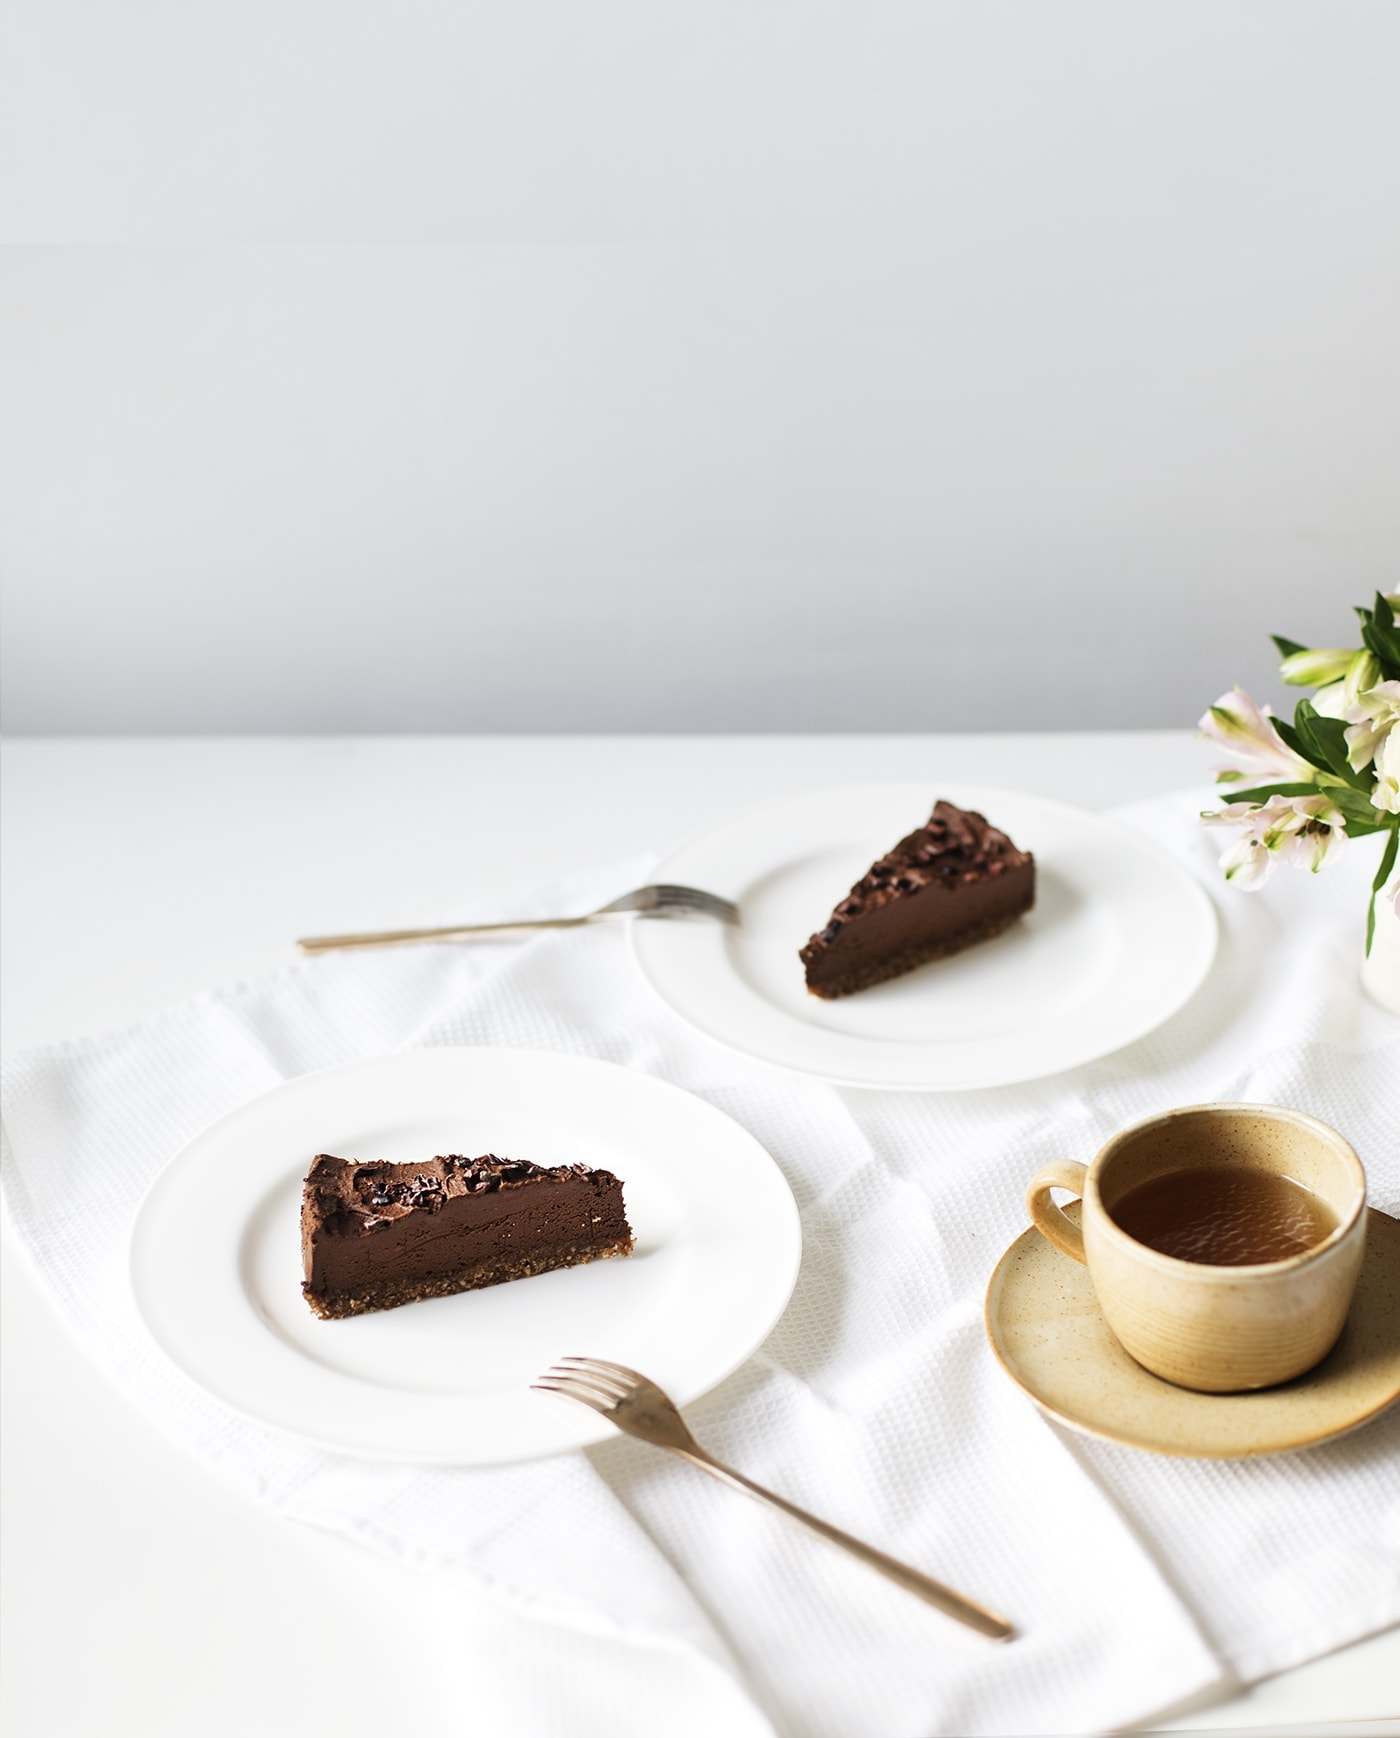 raw-avocado-chocolate-tart-recipe-paleo-dessert-gluten-free-dairy-free-healthier-sweet-treats